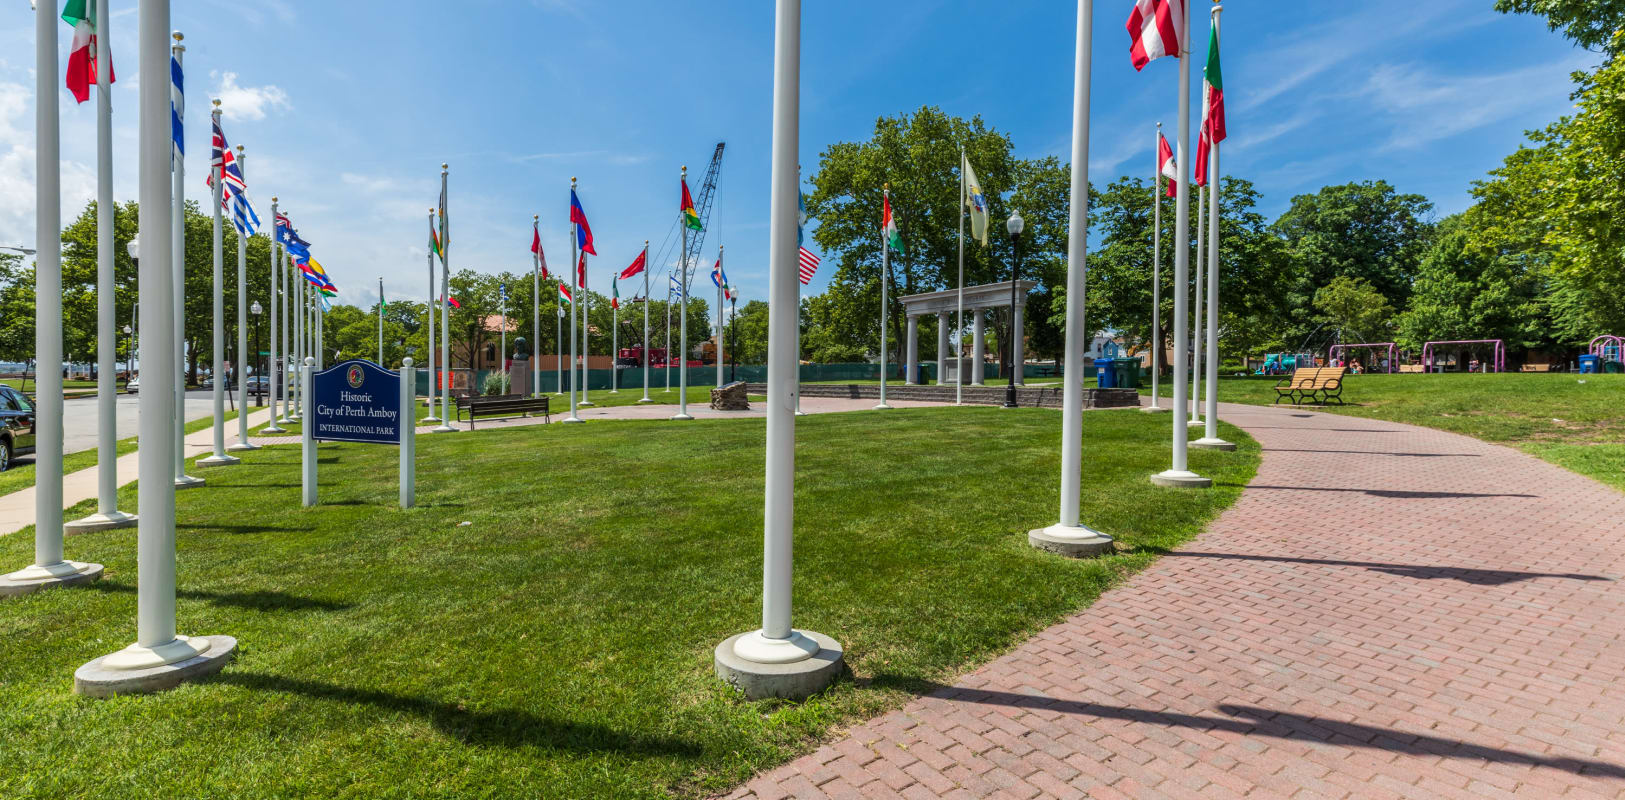 Incredible flags of many countries at the community park at Marineview Apartments in Perth Amboy, New Jersey